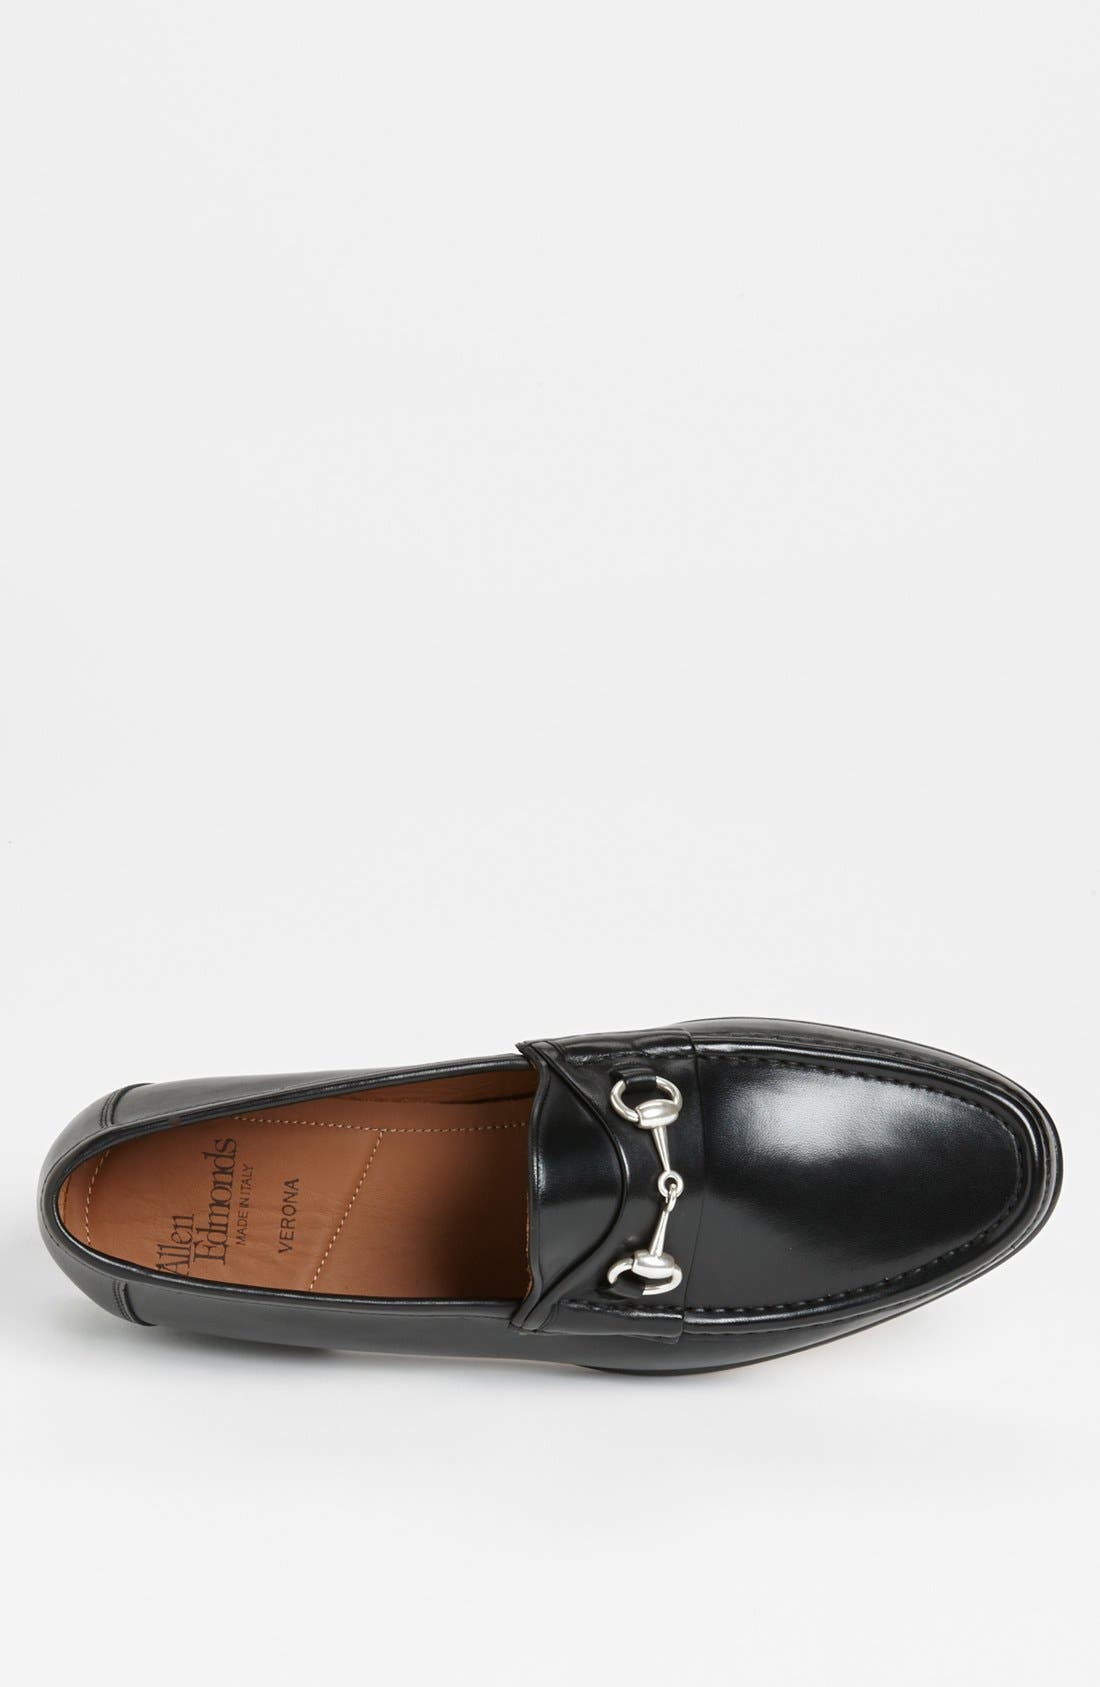 Verona II Bit Loafer,                             Alternate thumbnail 3, color,                             BLACK